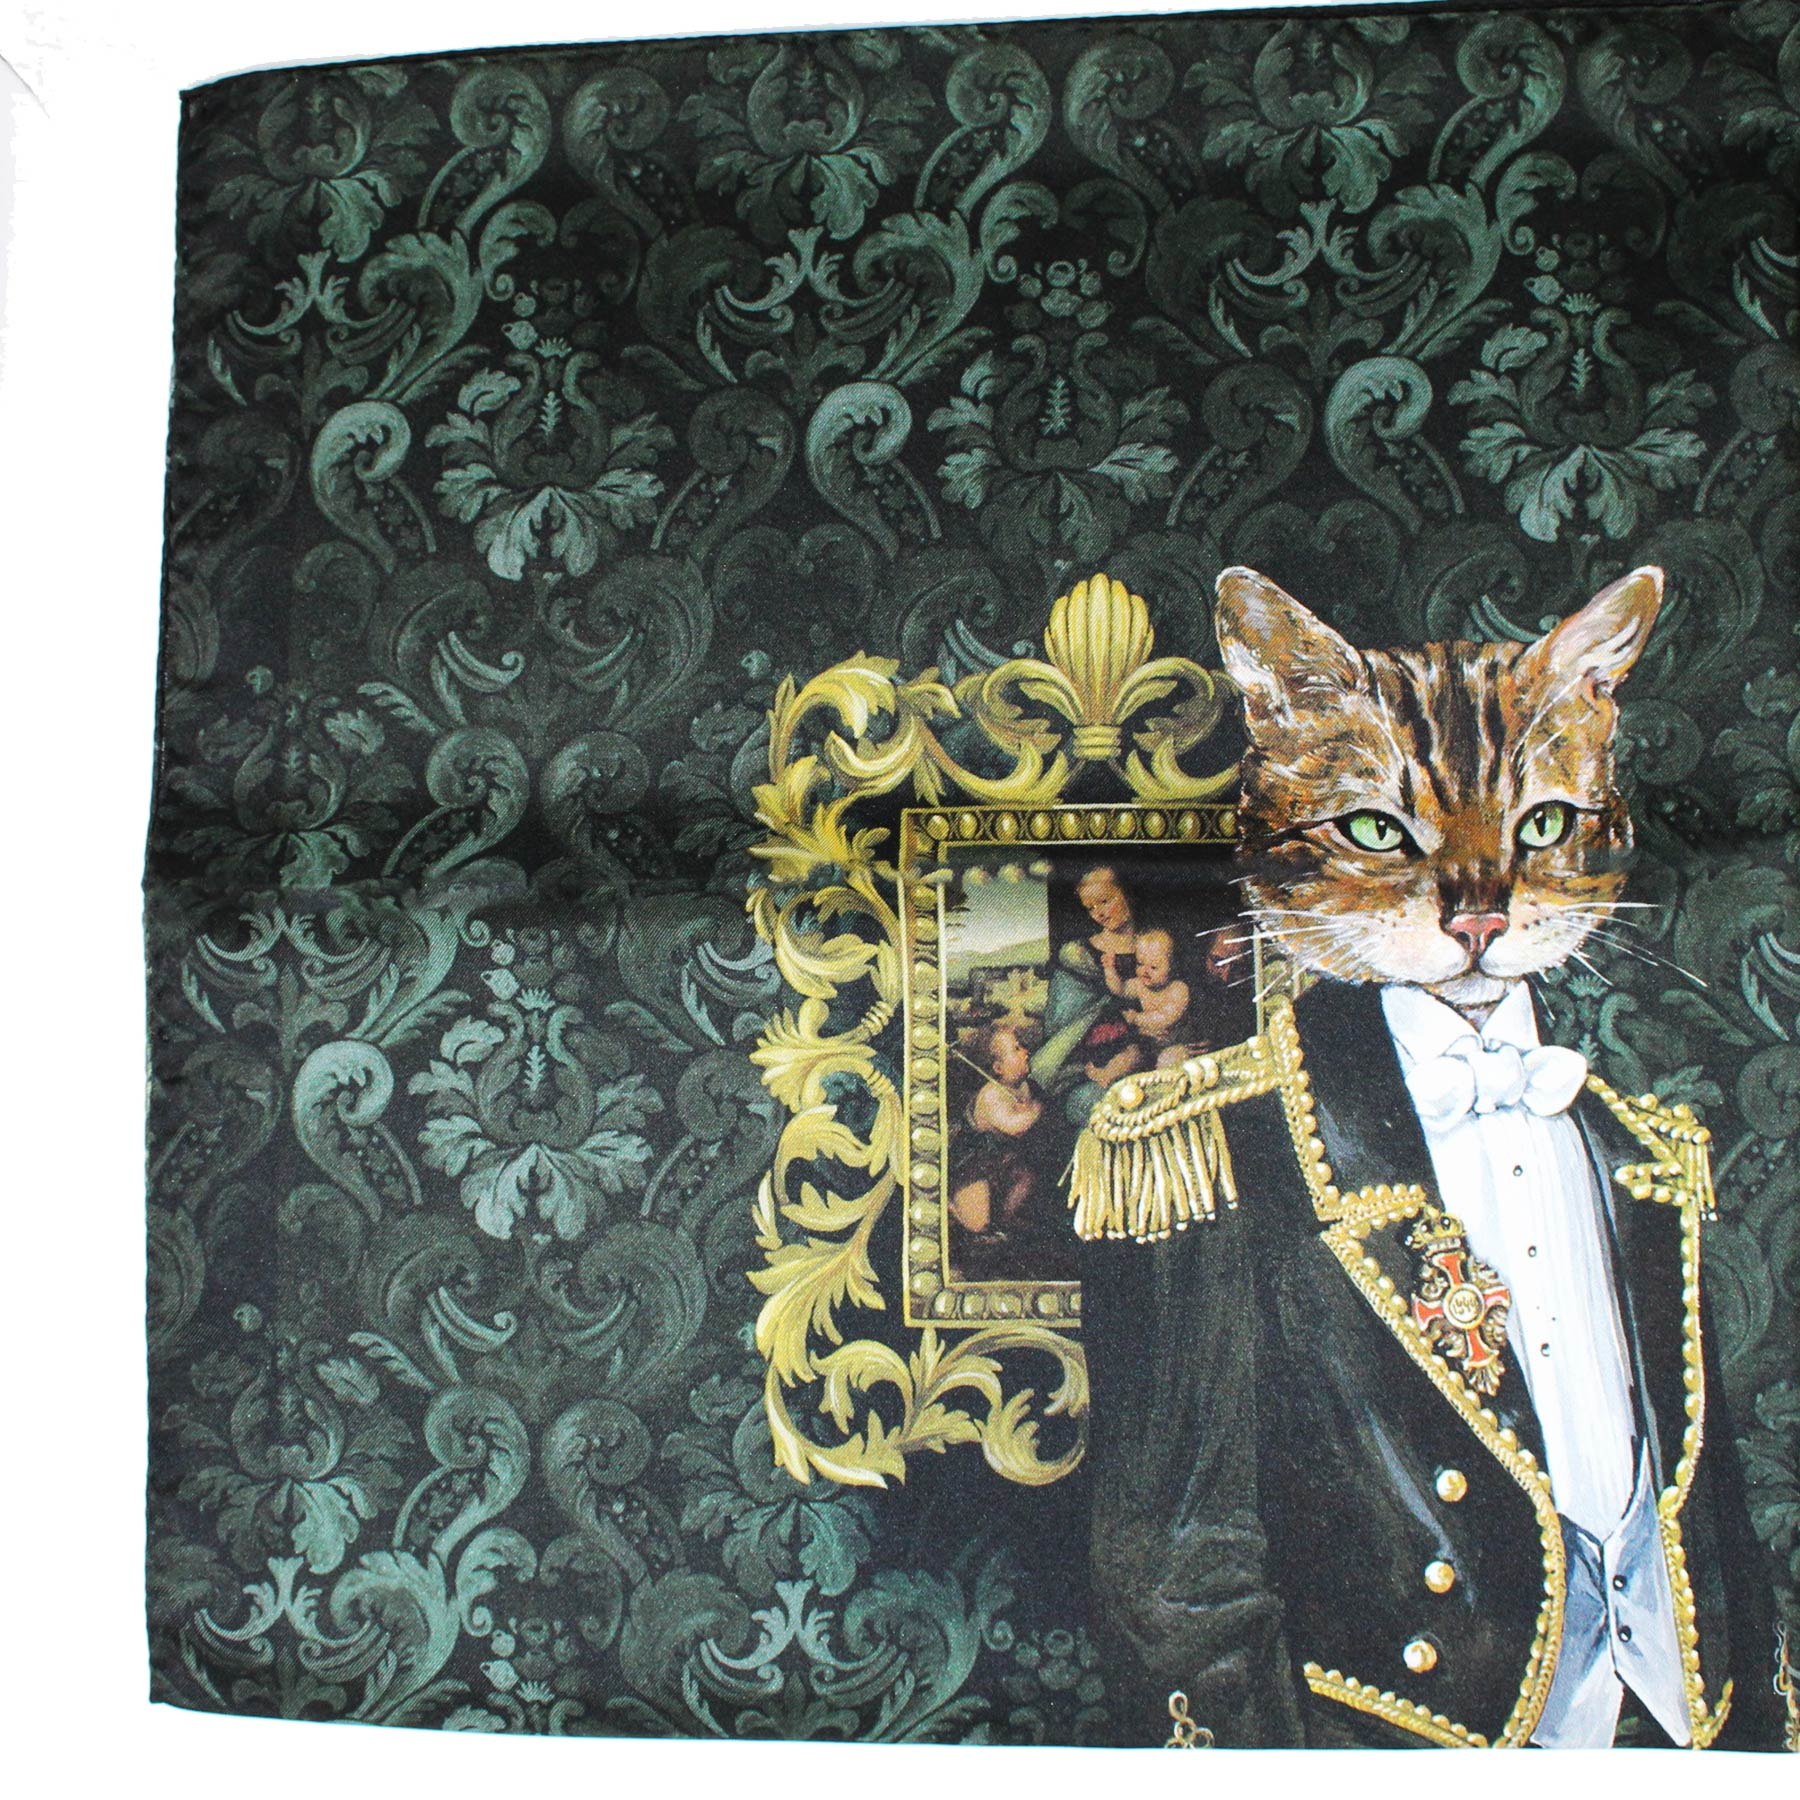 Dolce & Gabbana Scarf Black Green Painting -  Large Square Scarf